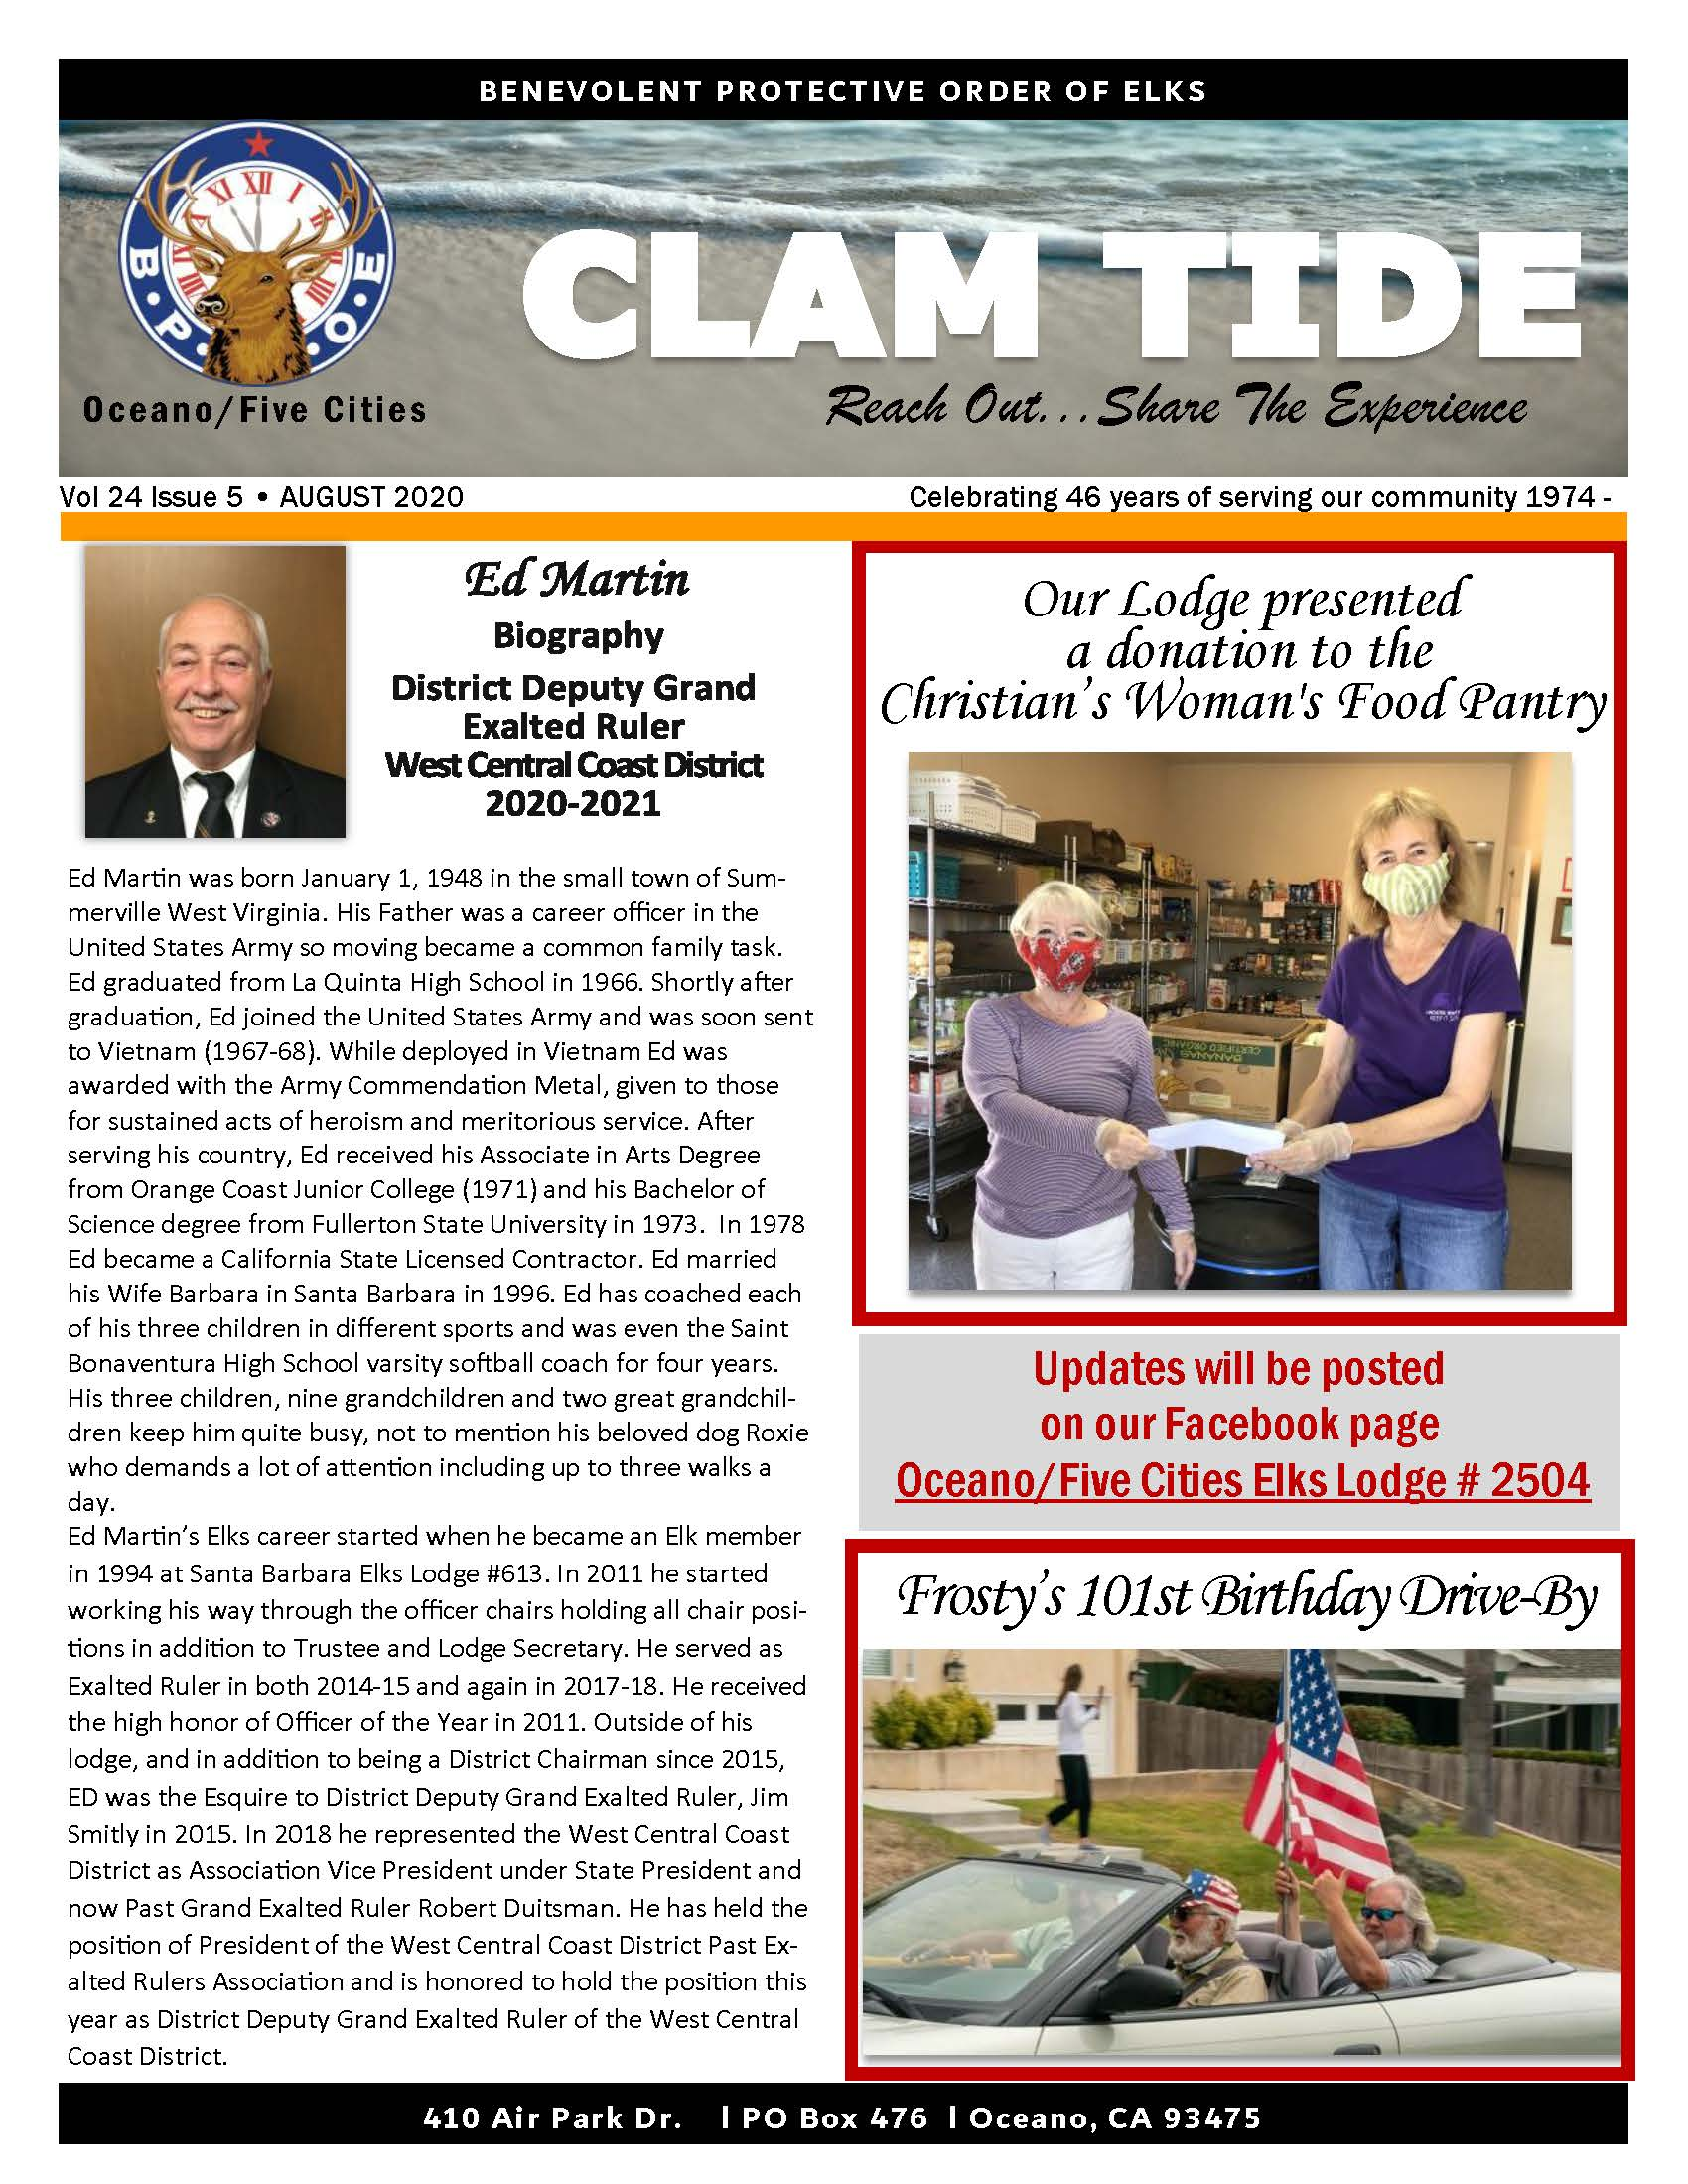 CLAM TIDE - JULY 2020